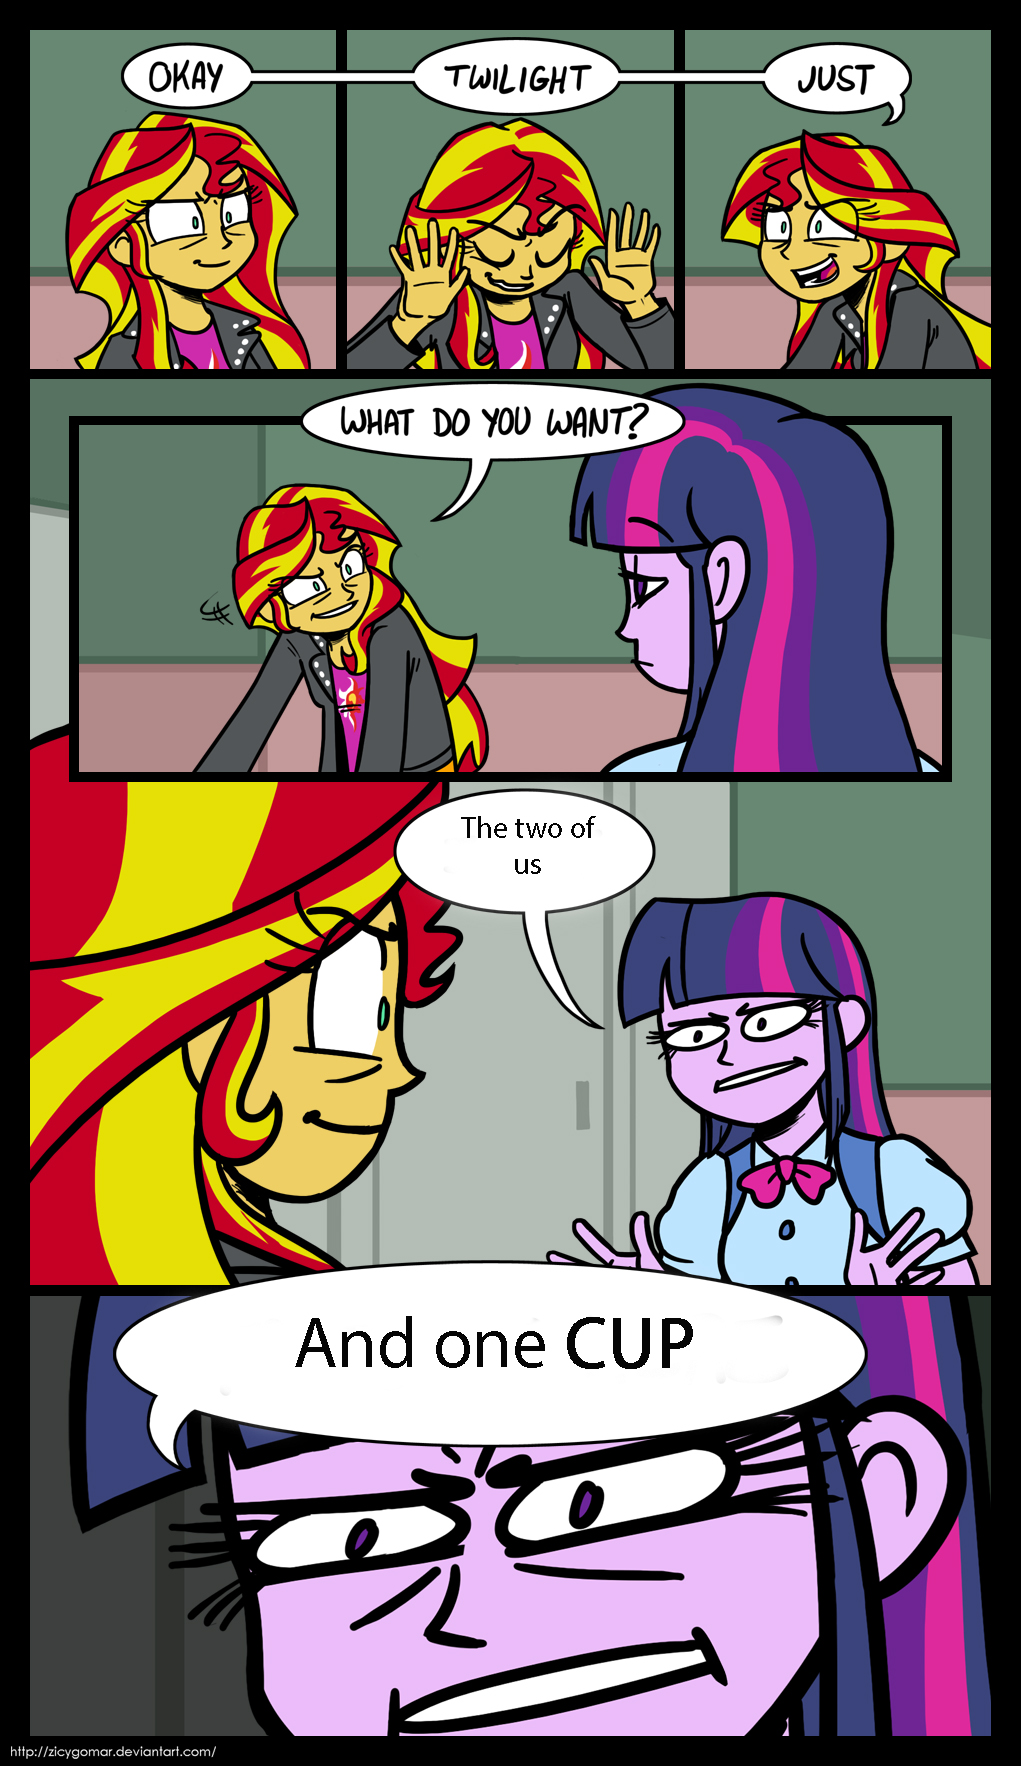 OKAY TWILIGHT JUST WHAT DO YOU WANT The Two Of Us 0 And One CUP